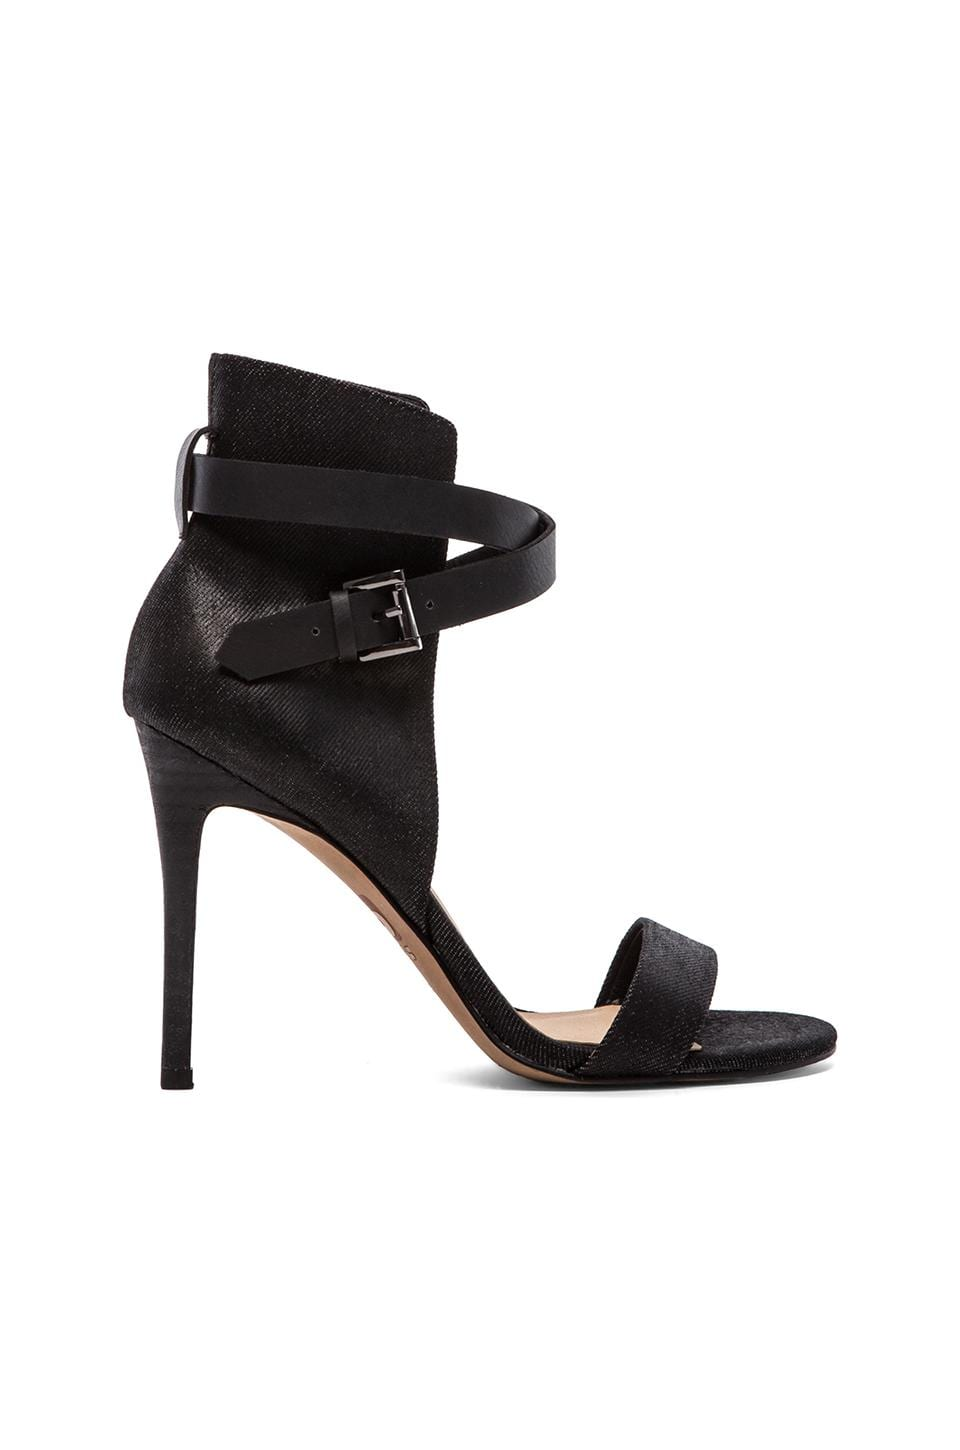 Joe's Jeans Macee Heel in Shiny Black